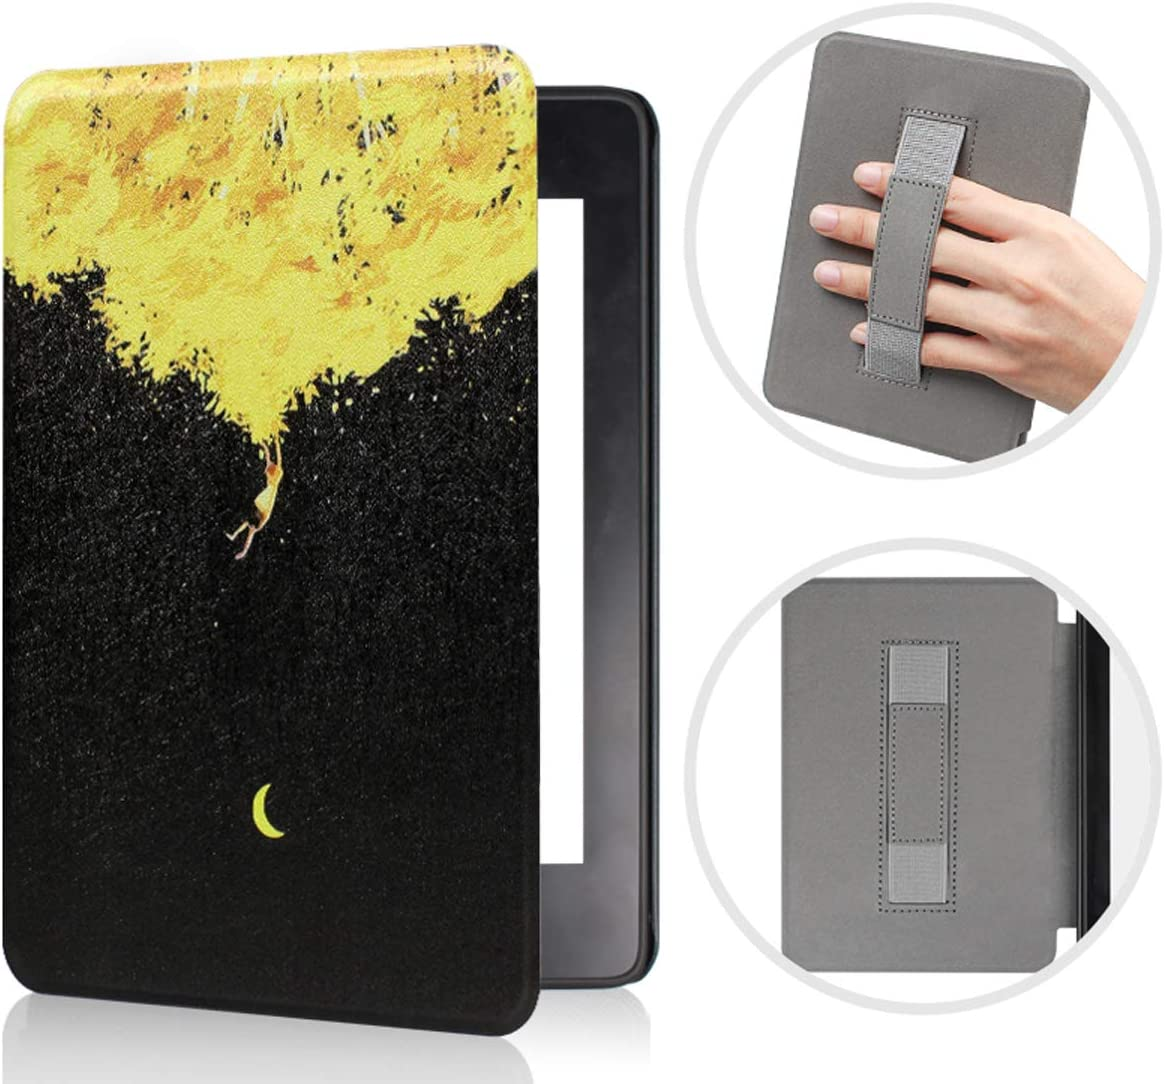 BeautyWill Over item handling Kindle Paperwhite Case Ha 10th sold out with Generation-2018